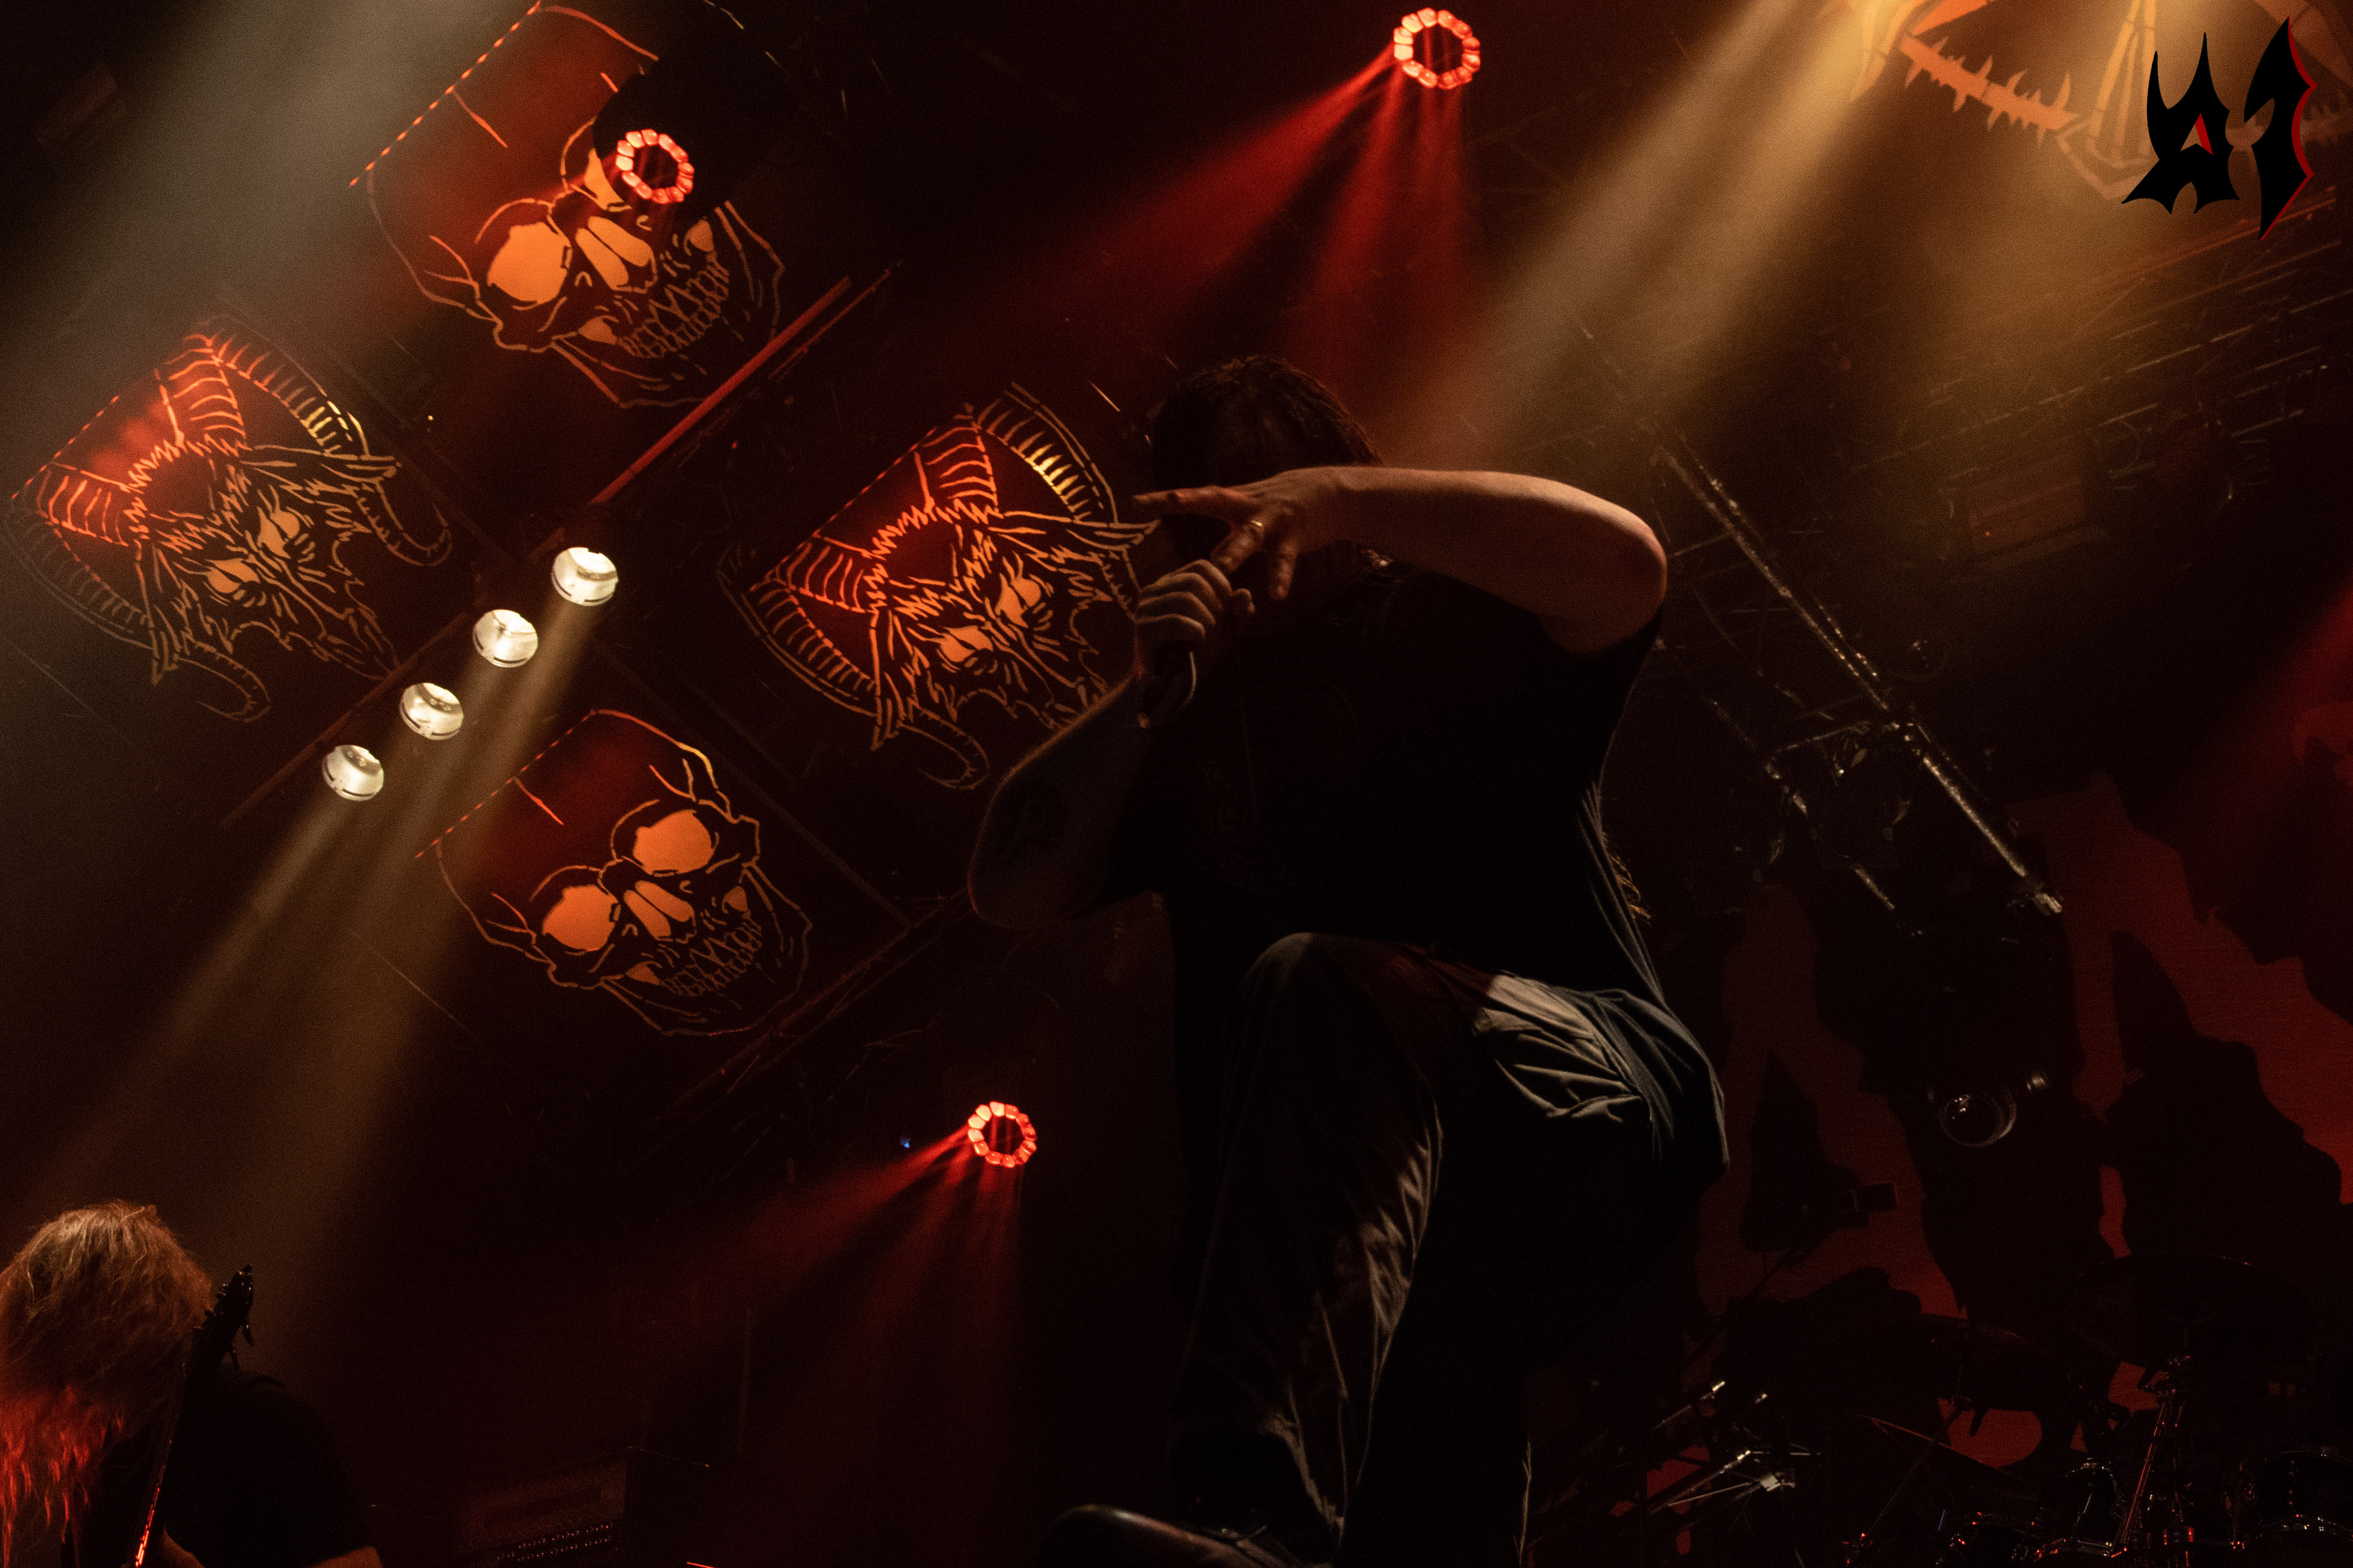 Hellfest - Cannibal Corpse - 21